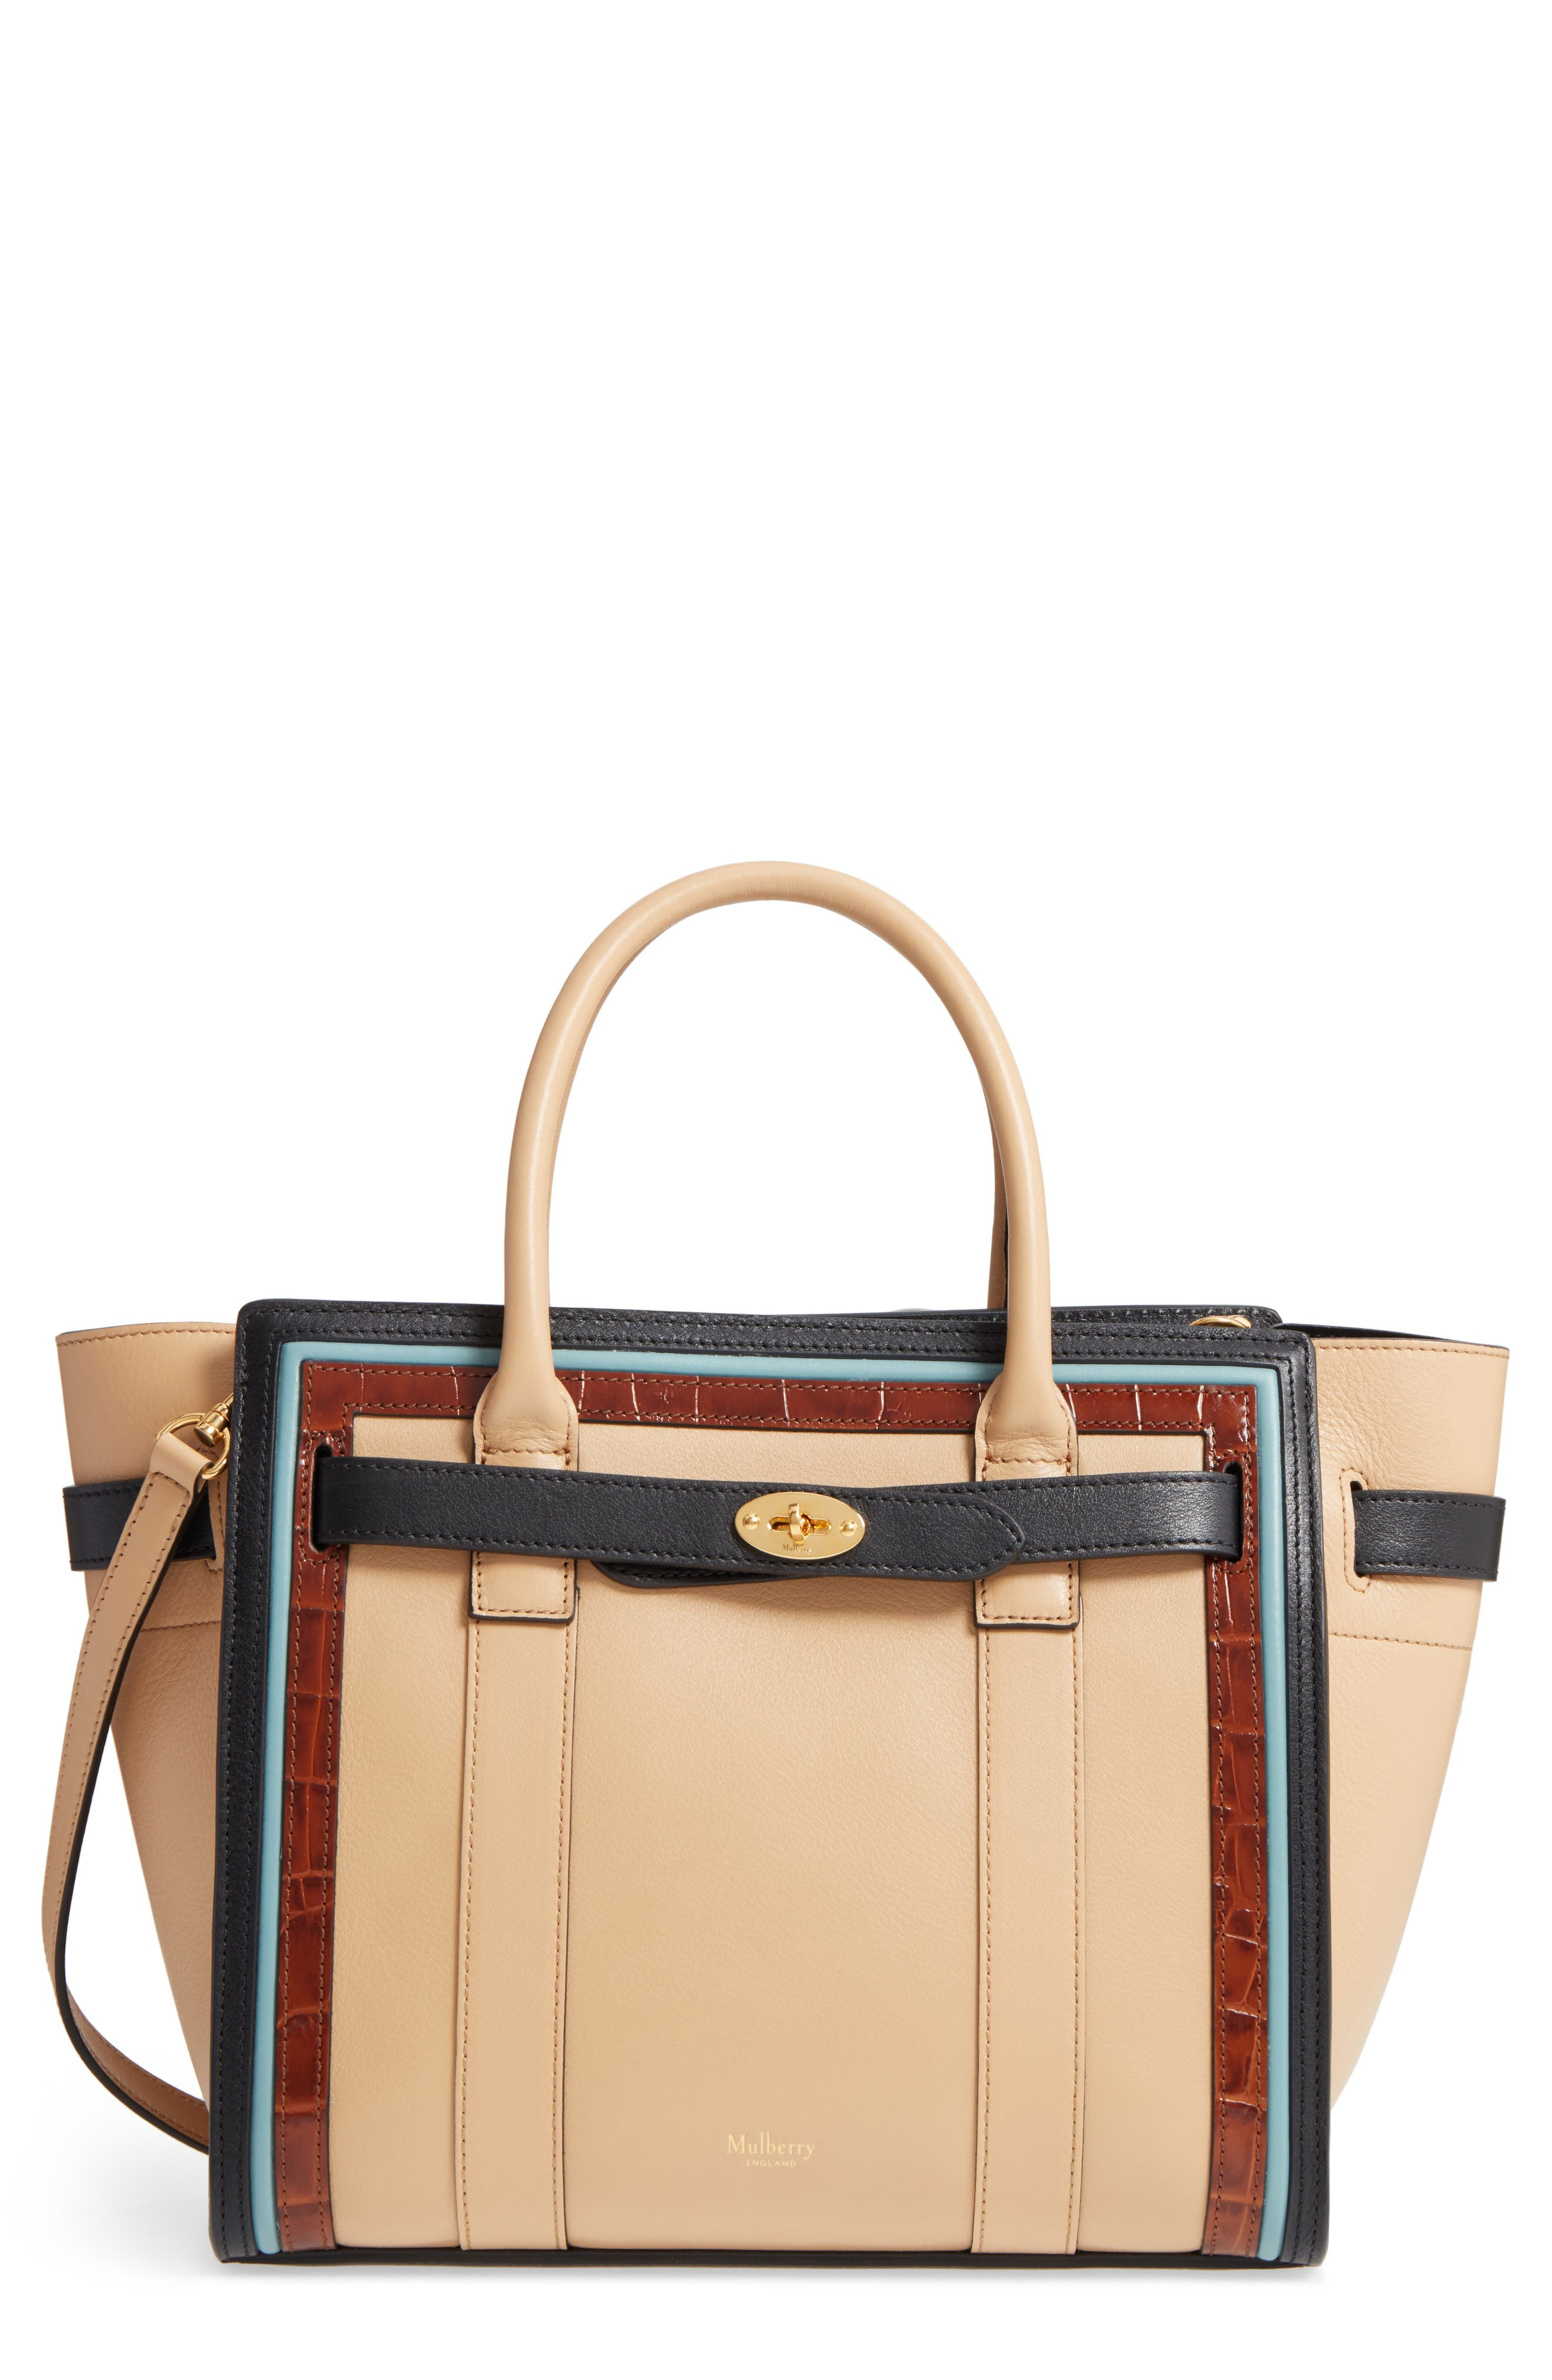 Main Image - Mulberry Small Bayswater Leather Satchel